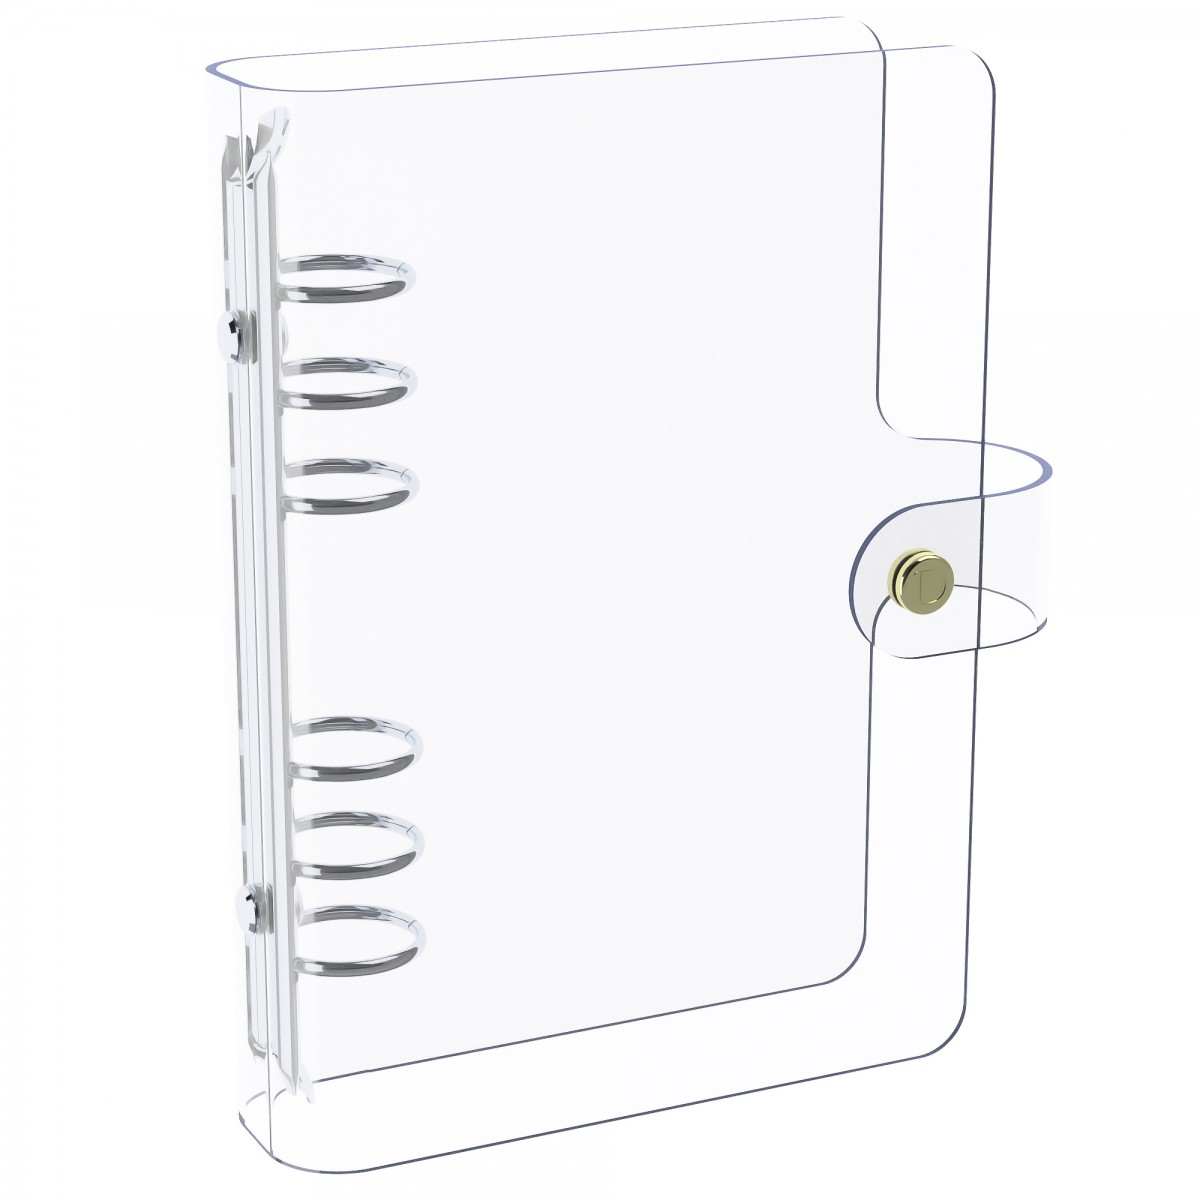 DISCAGENDA CLARITY CLEAR SEE THROUGH PVC PLANNER COVER - RINGBOUND, PERSONAL SIZE, SILVER